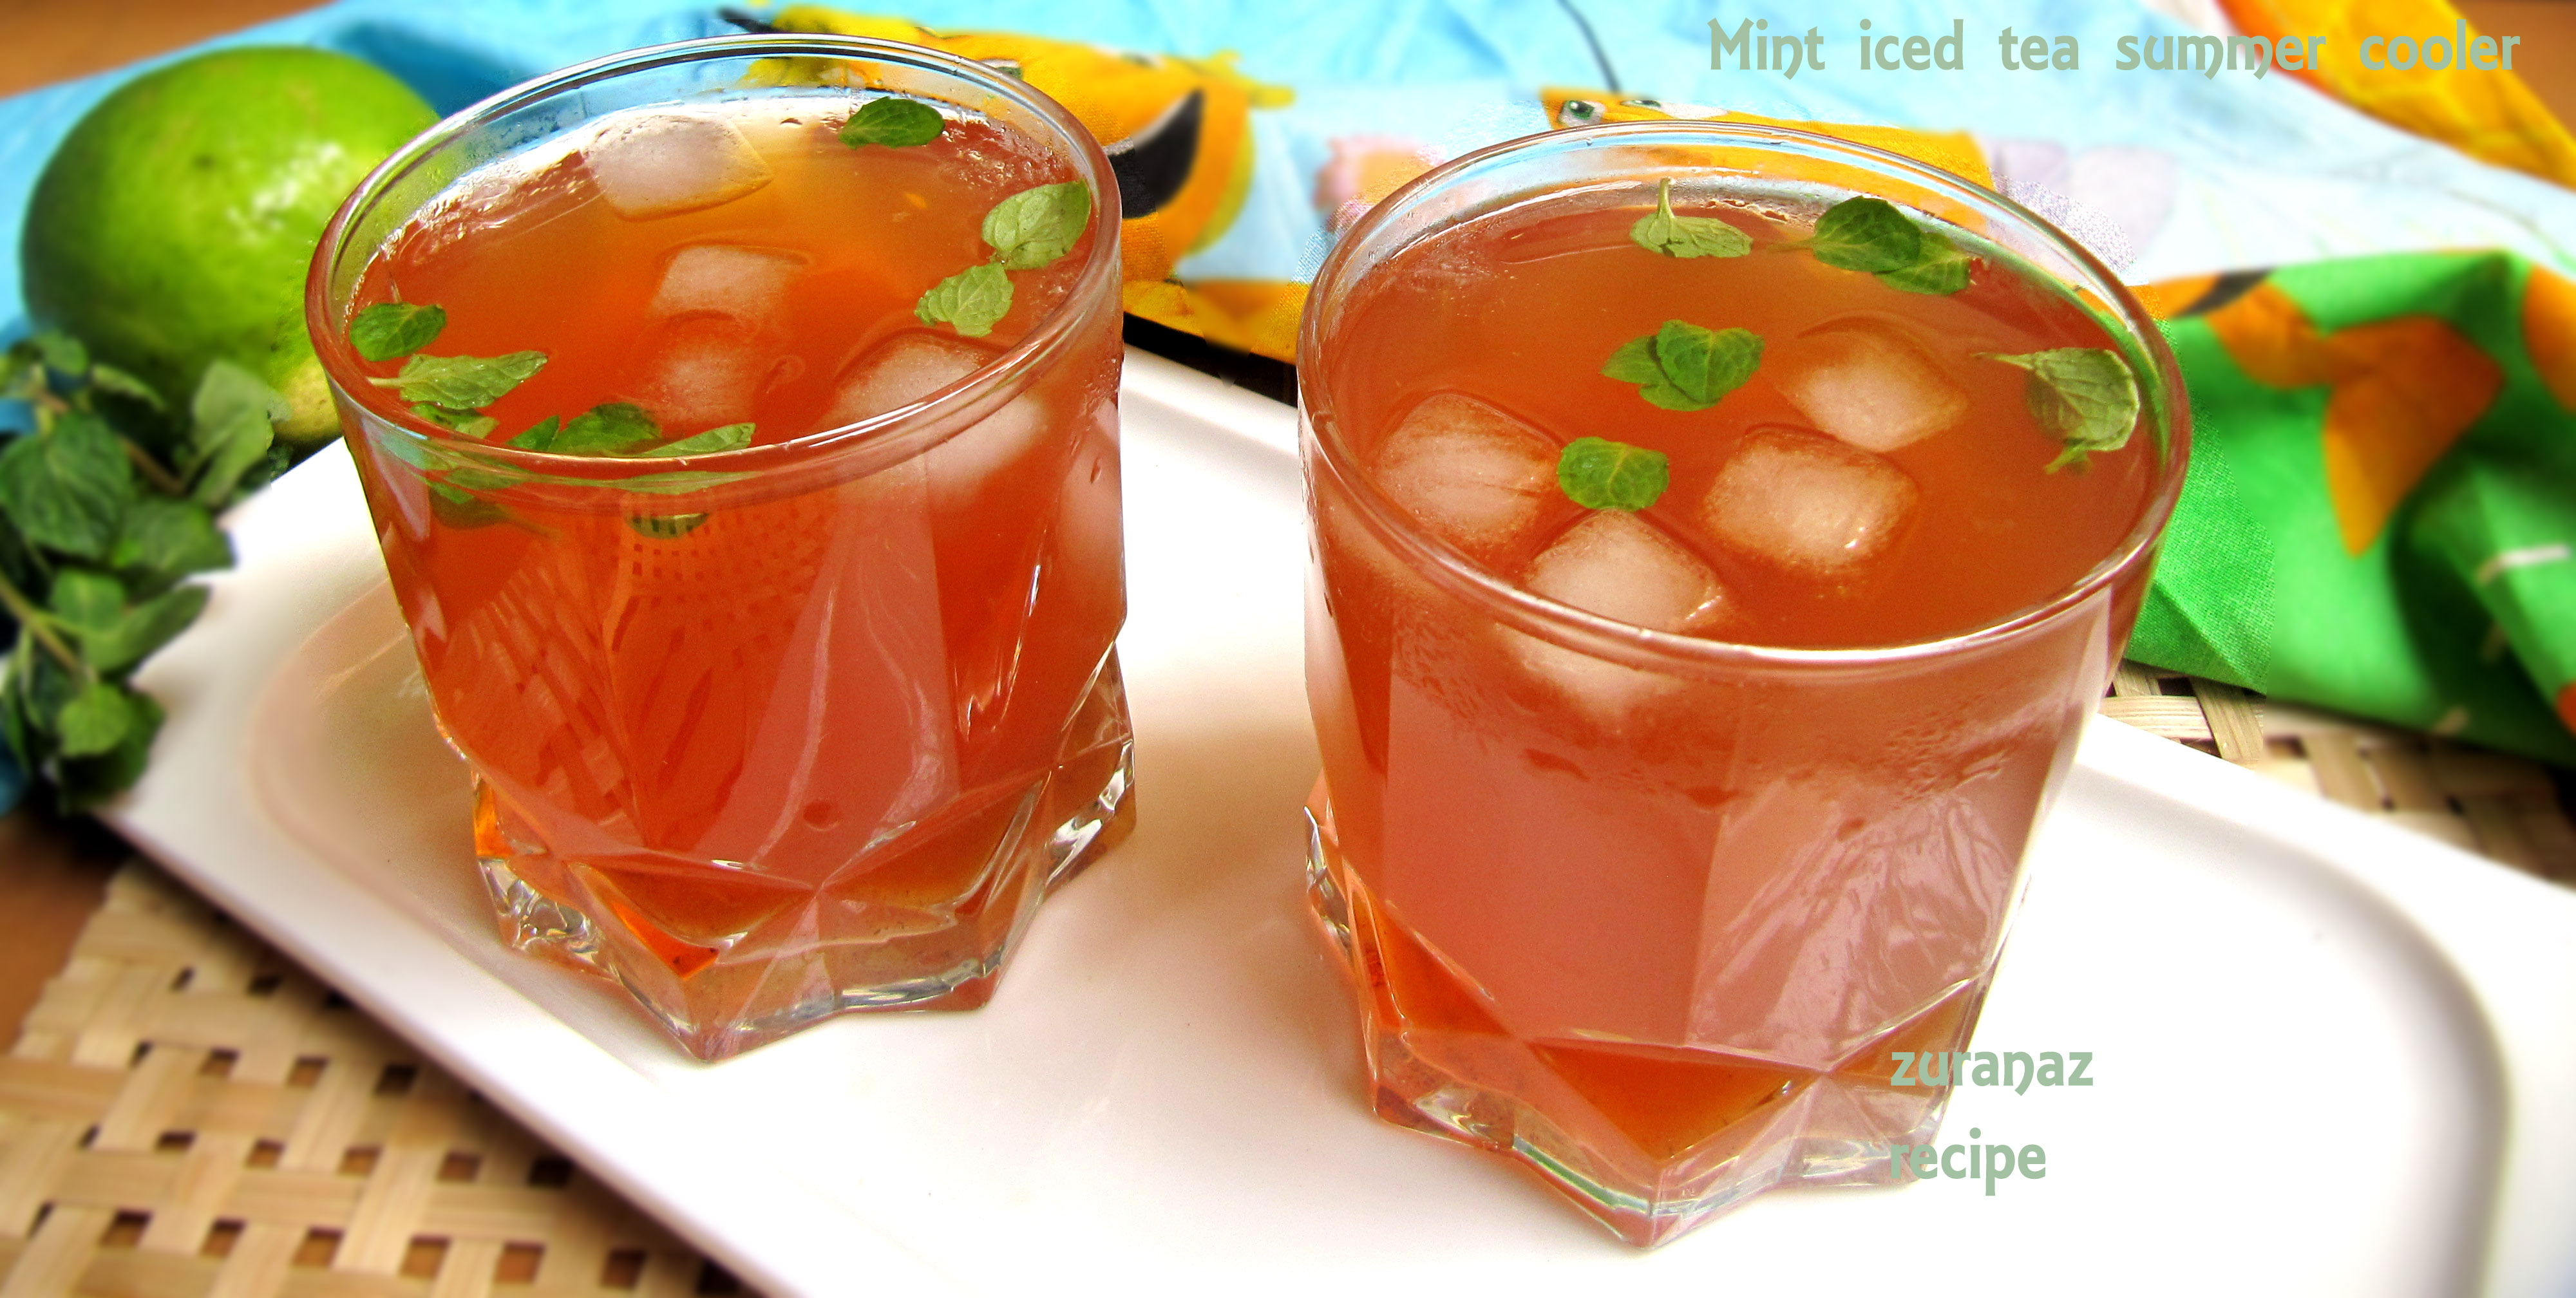 Mint Iced Tea Summer Cooler  ||pudina cha  ||mint tea